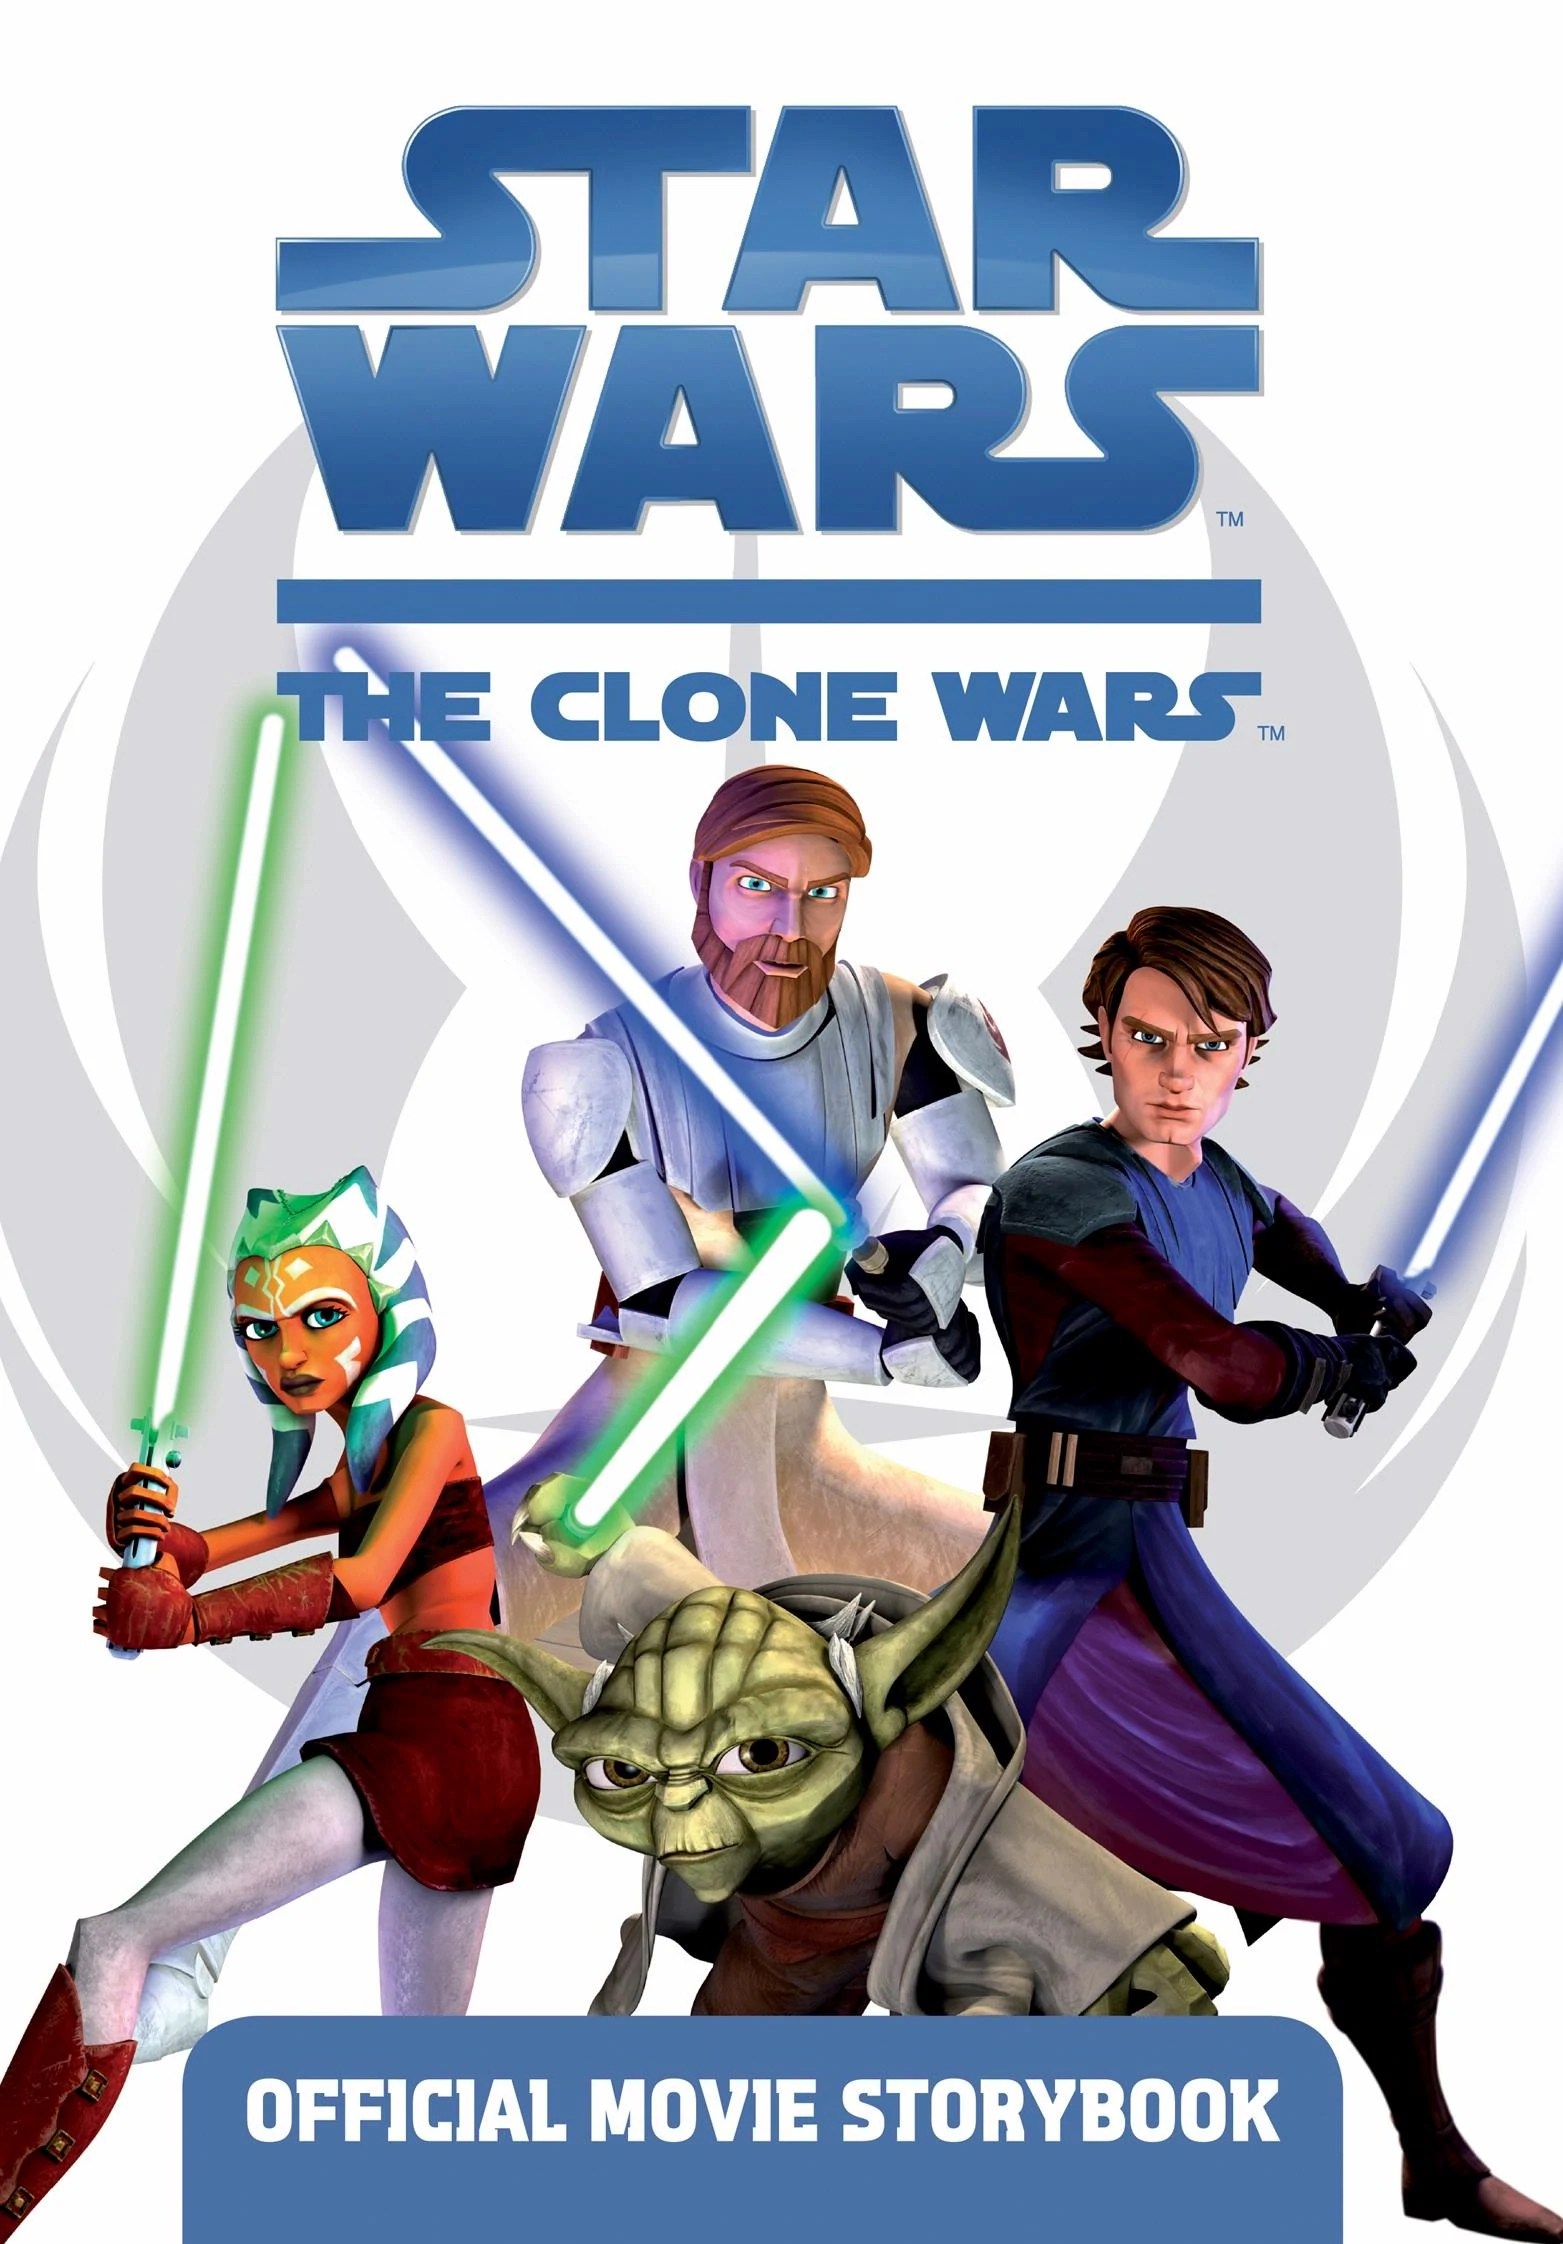 Star Wars The Clone Wars Official Movie Storybook